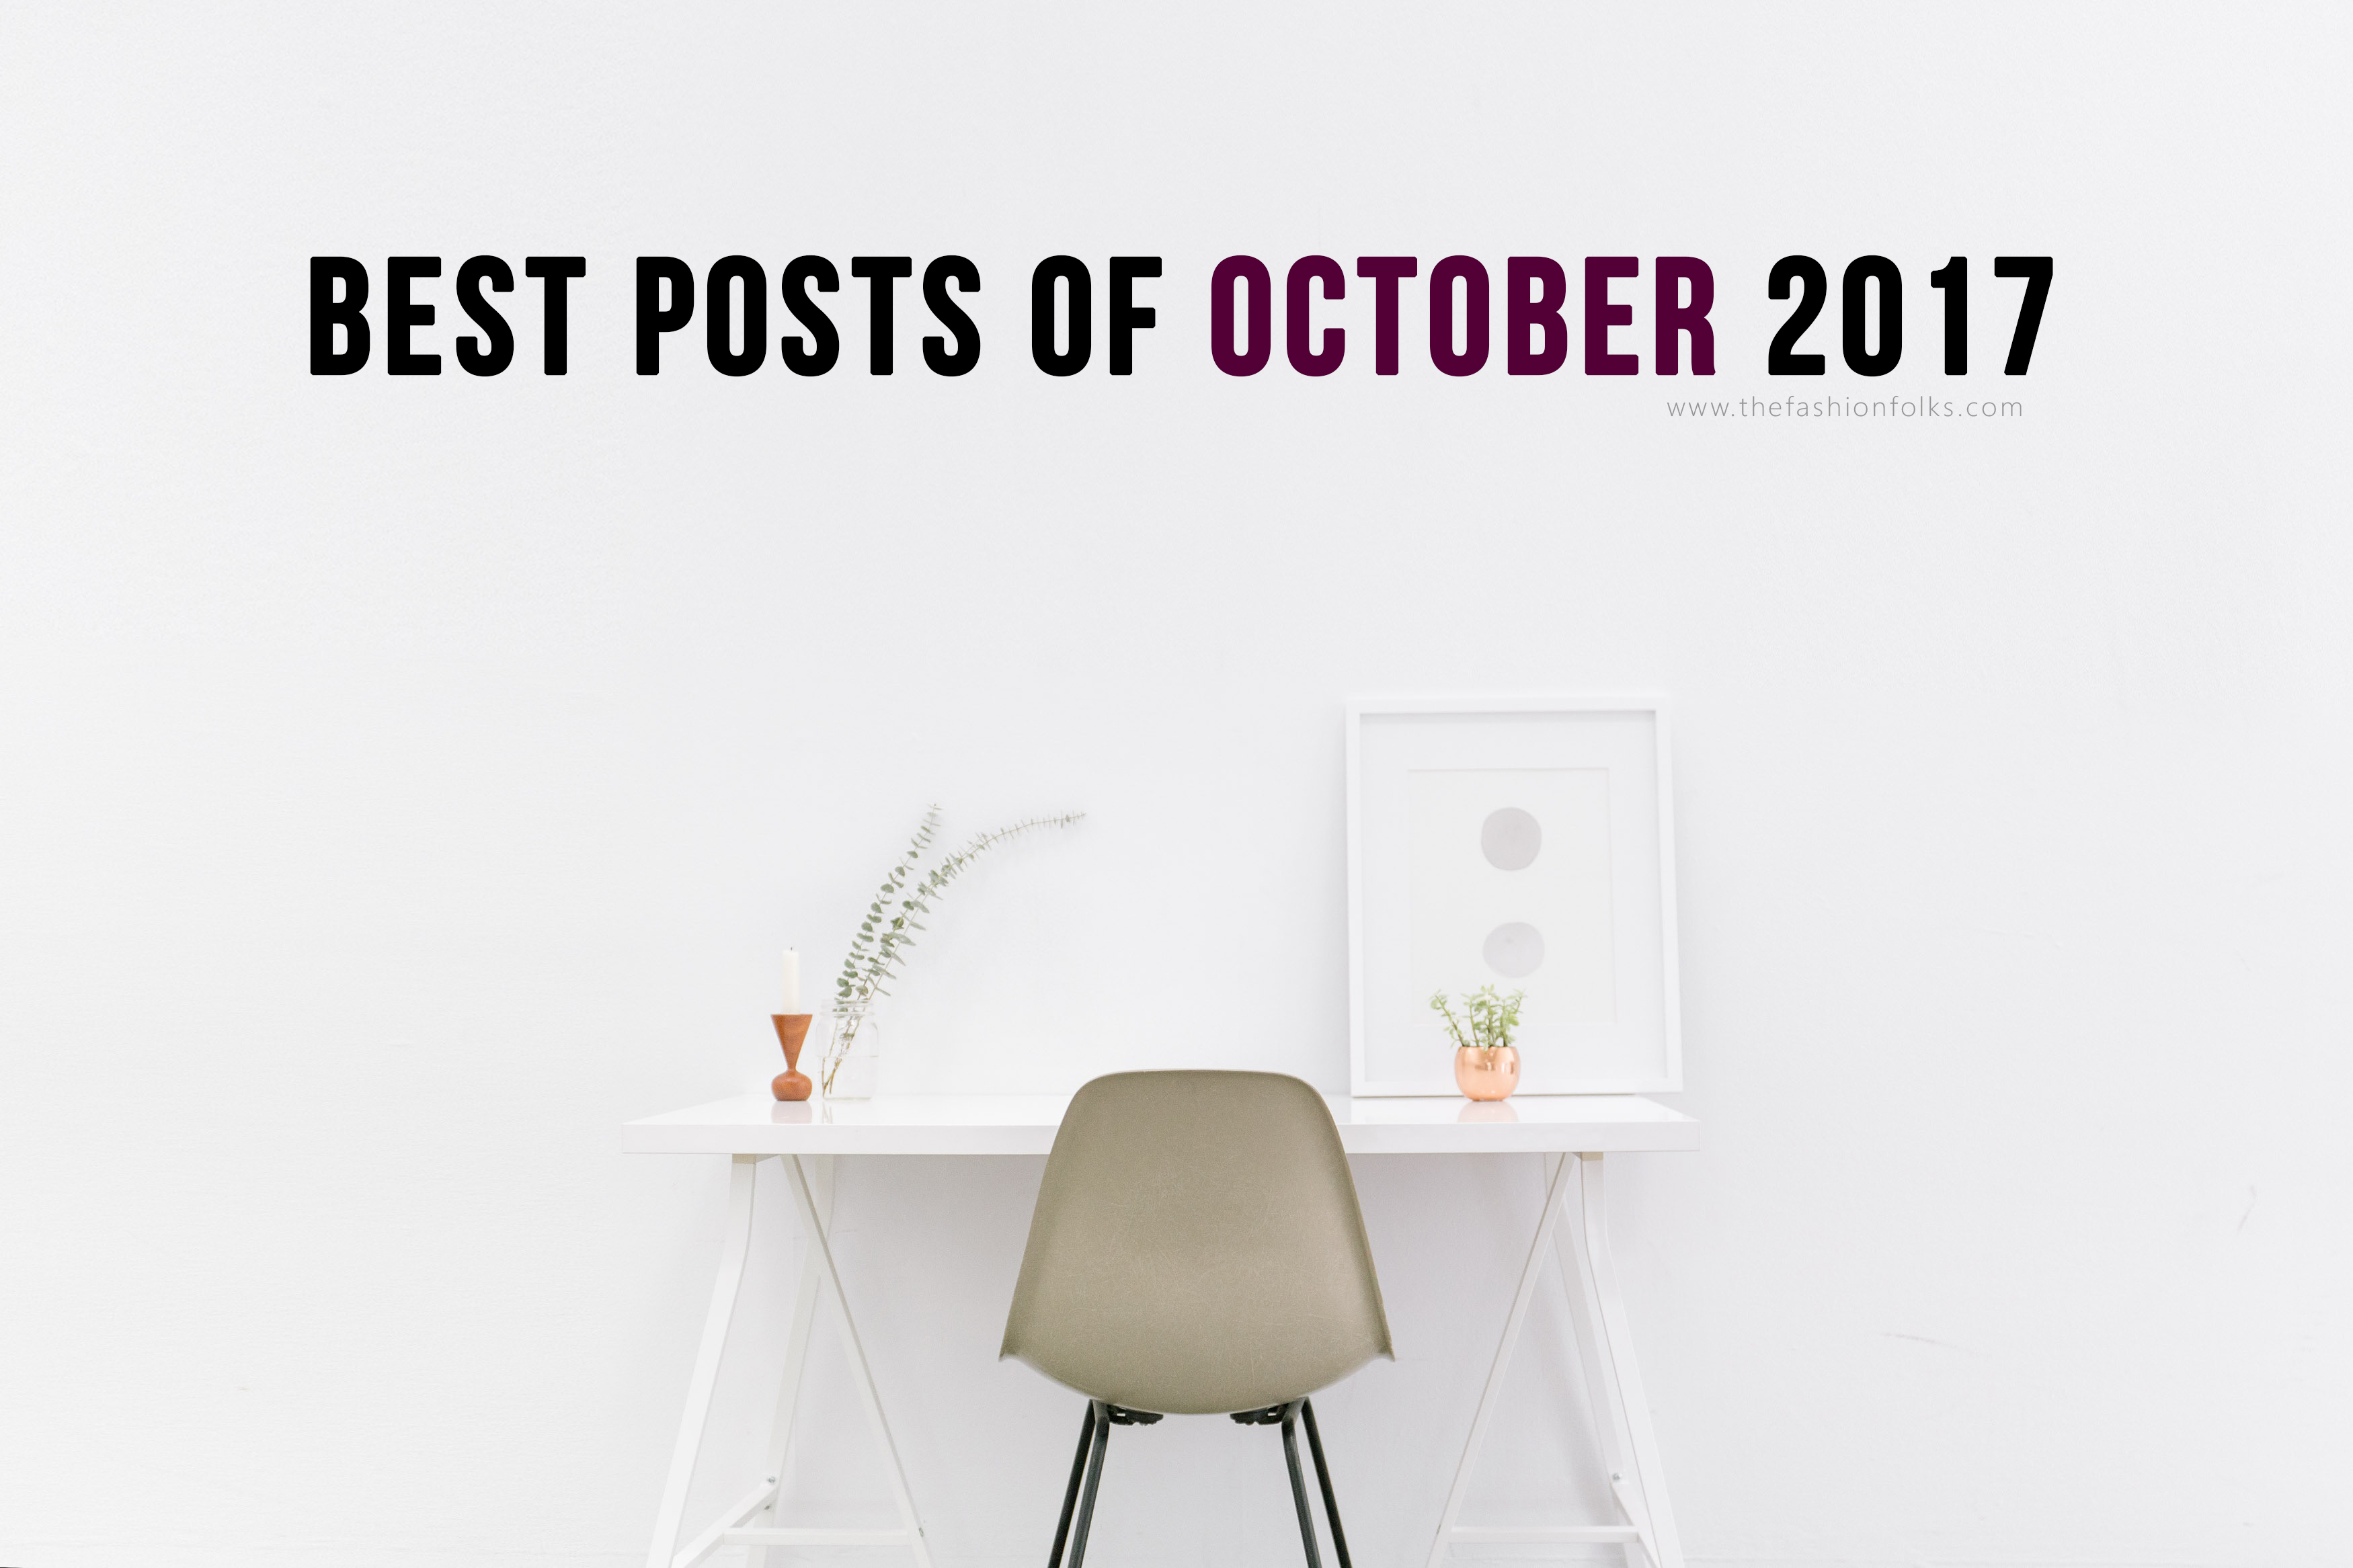 best posts of october 2017 | The Fashion Folks